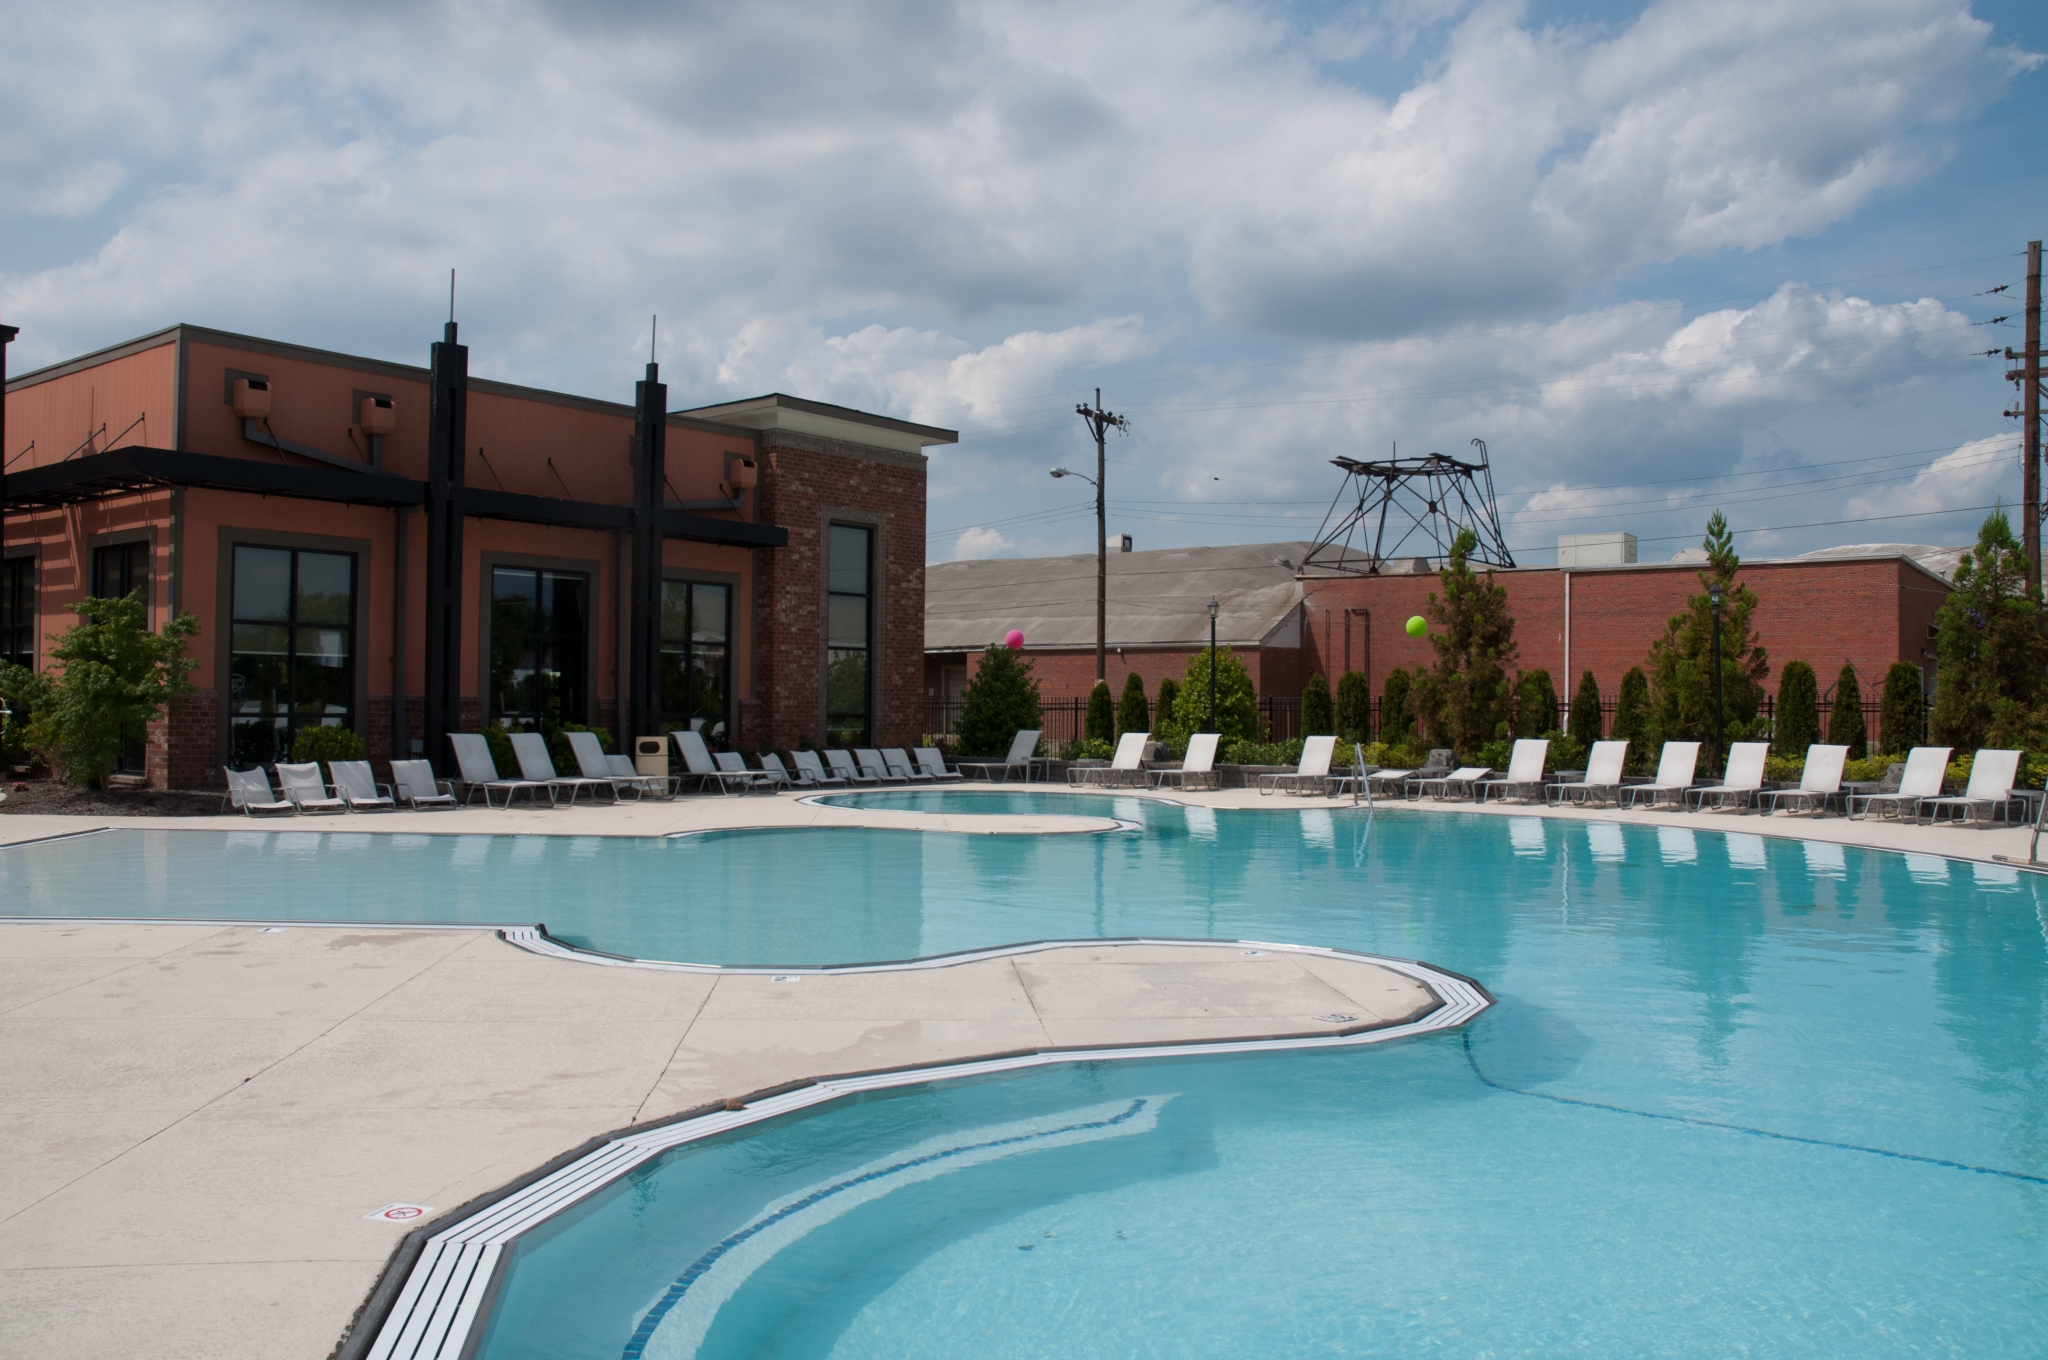 Image of Zero-entry swimming pool for Bellamy at Louisville